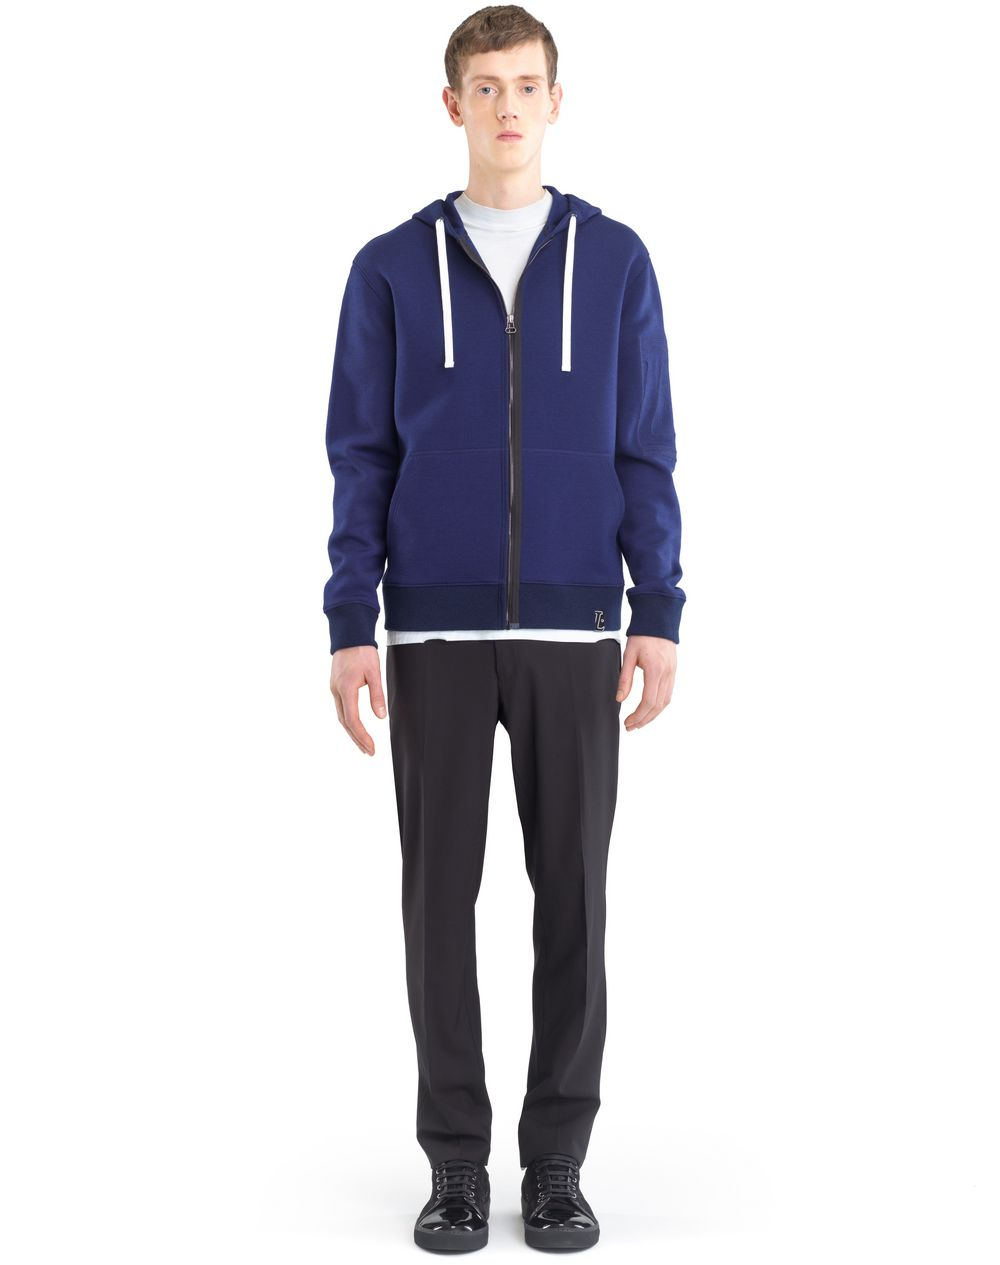 COMPACT JERSEY HOODIE - Lanvin